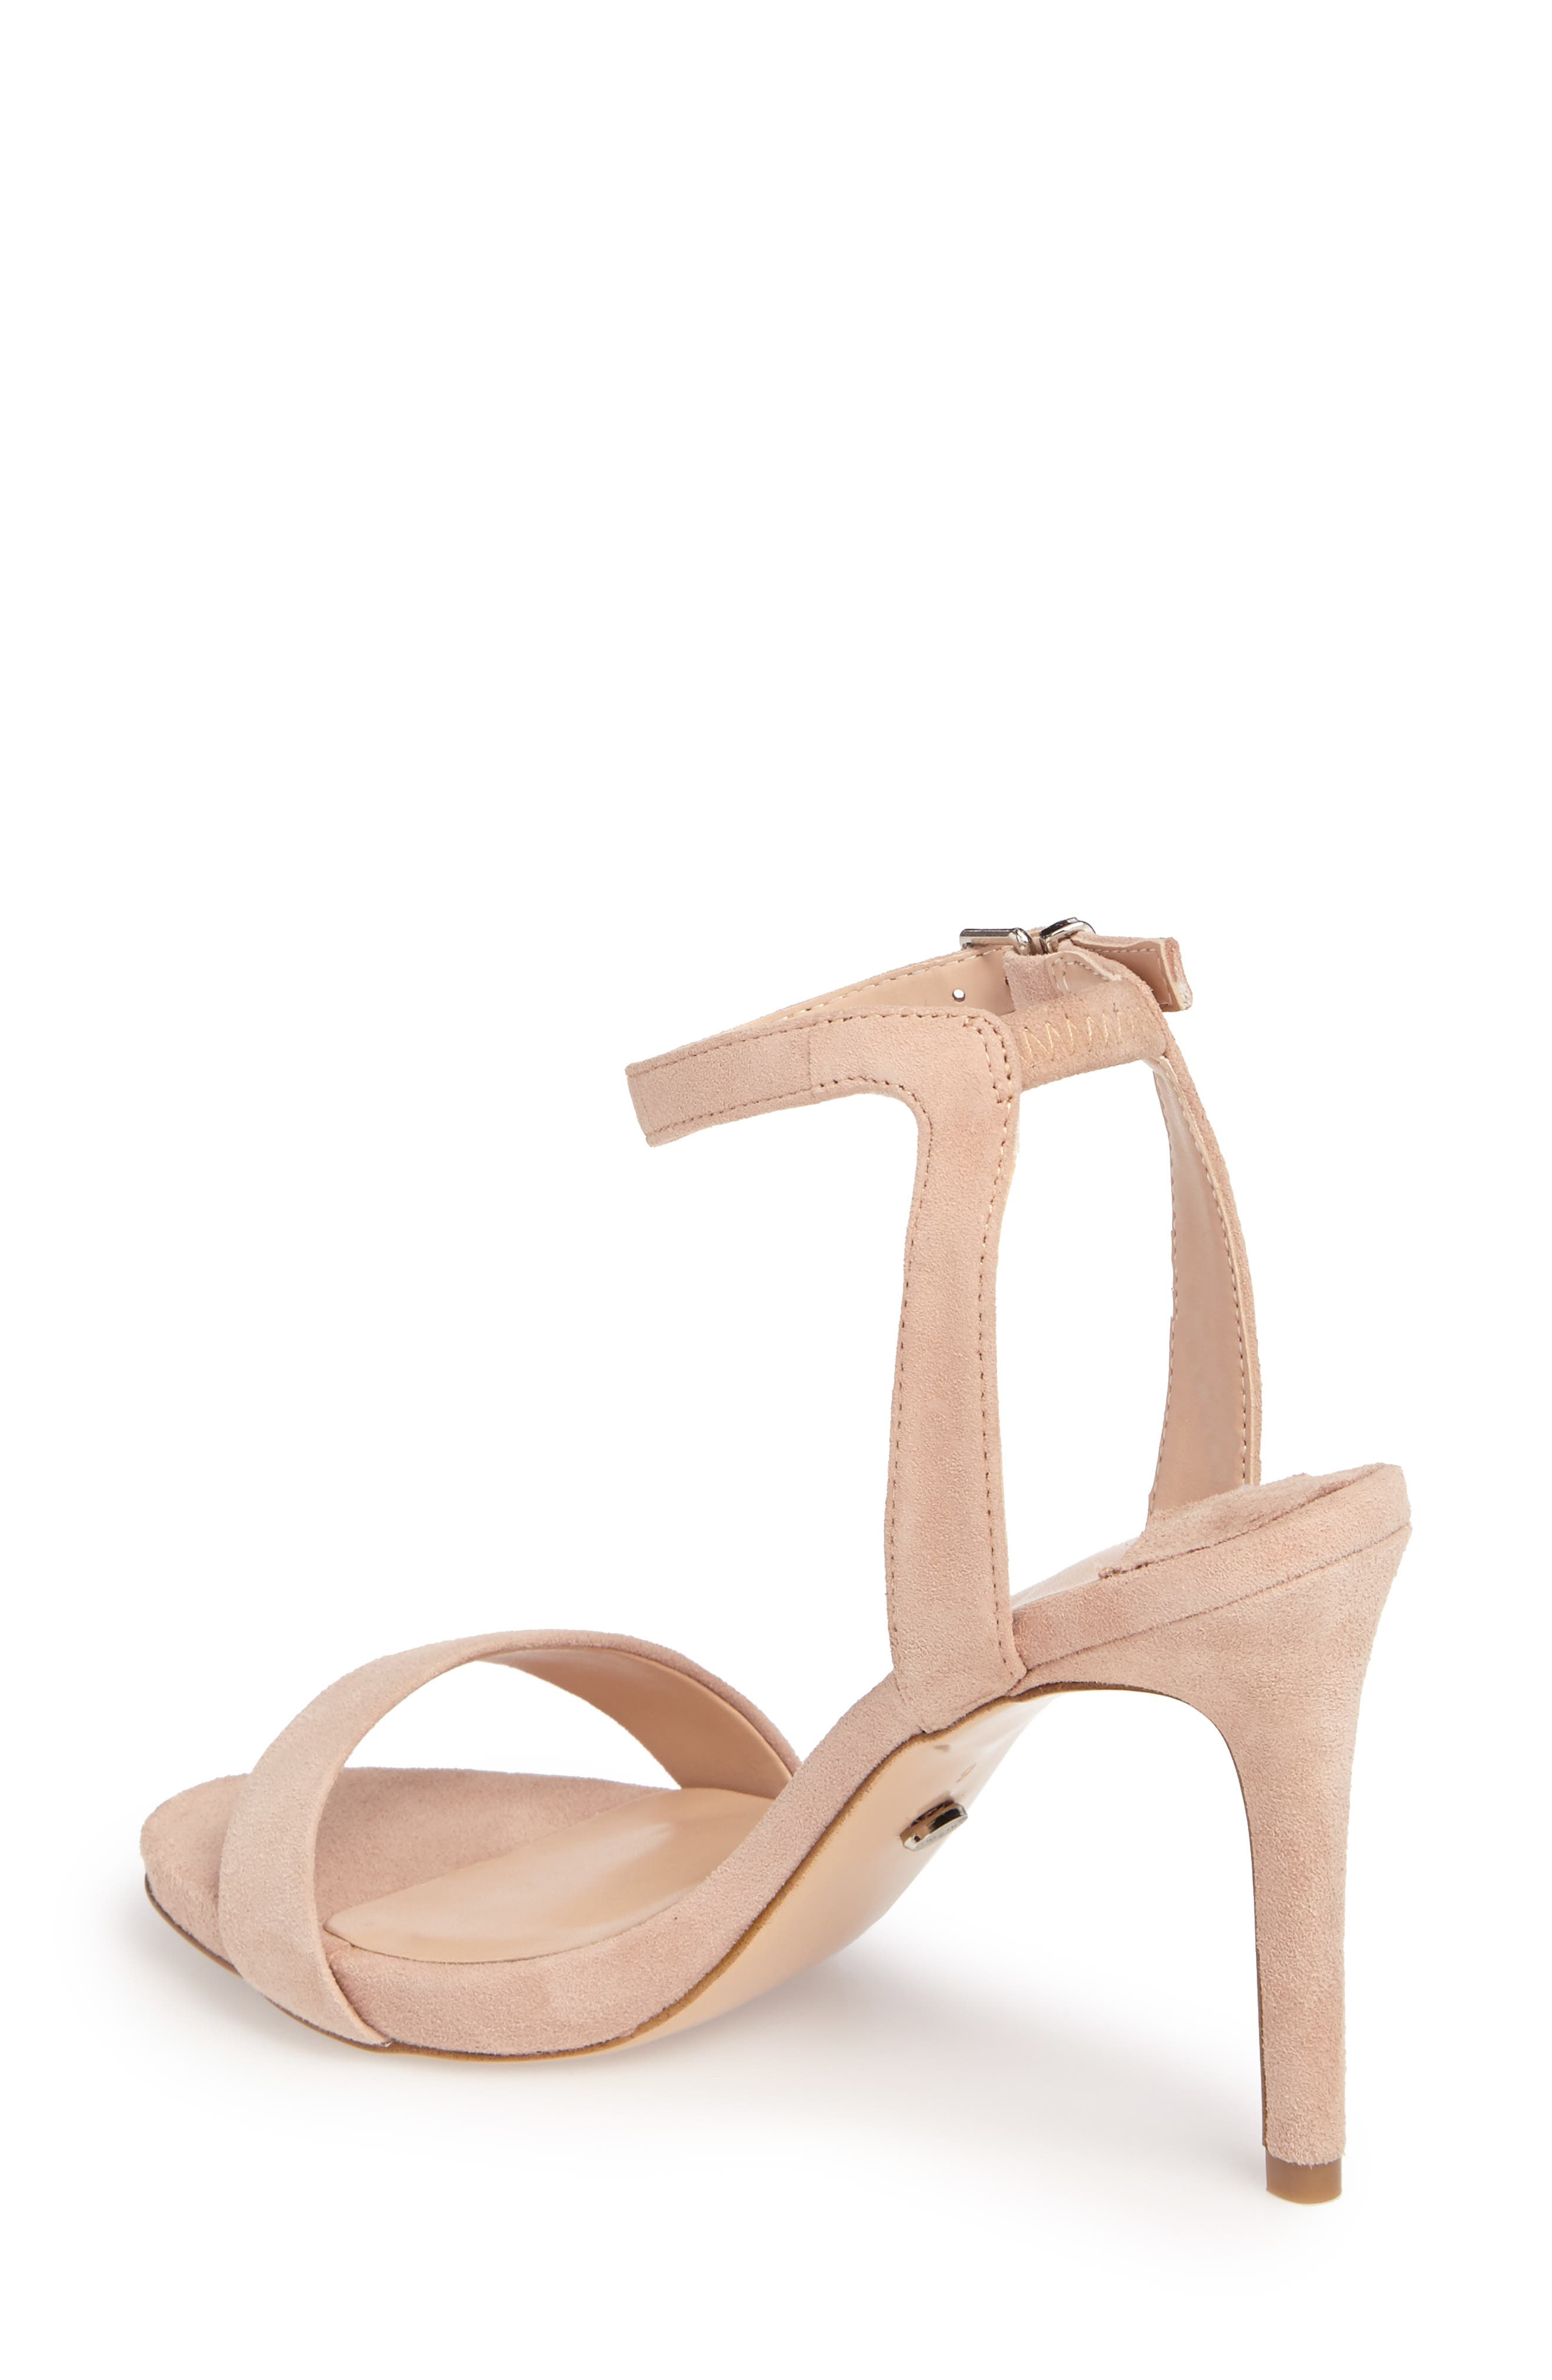 Char Ankle Cuff Sandal,                             Alternate thumbnail 2, color,                             Blush Suede